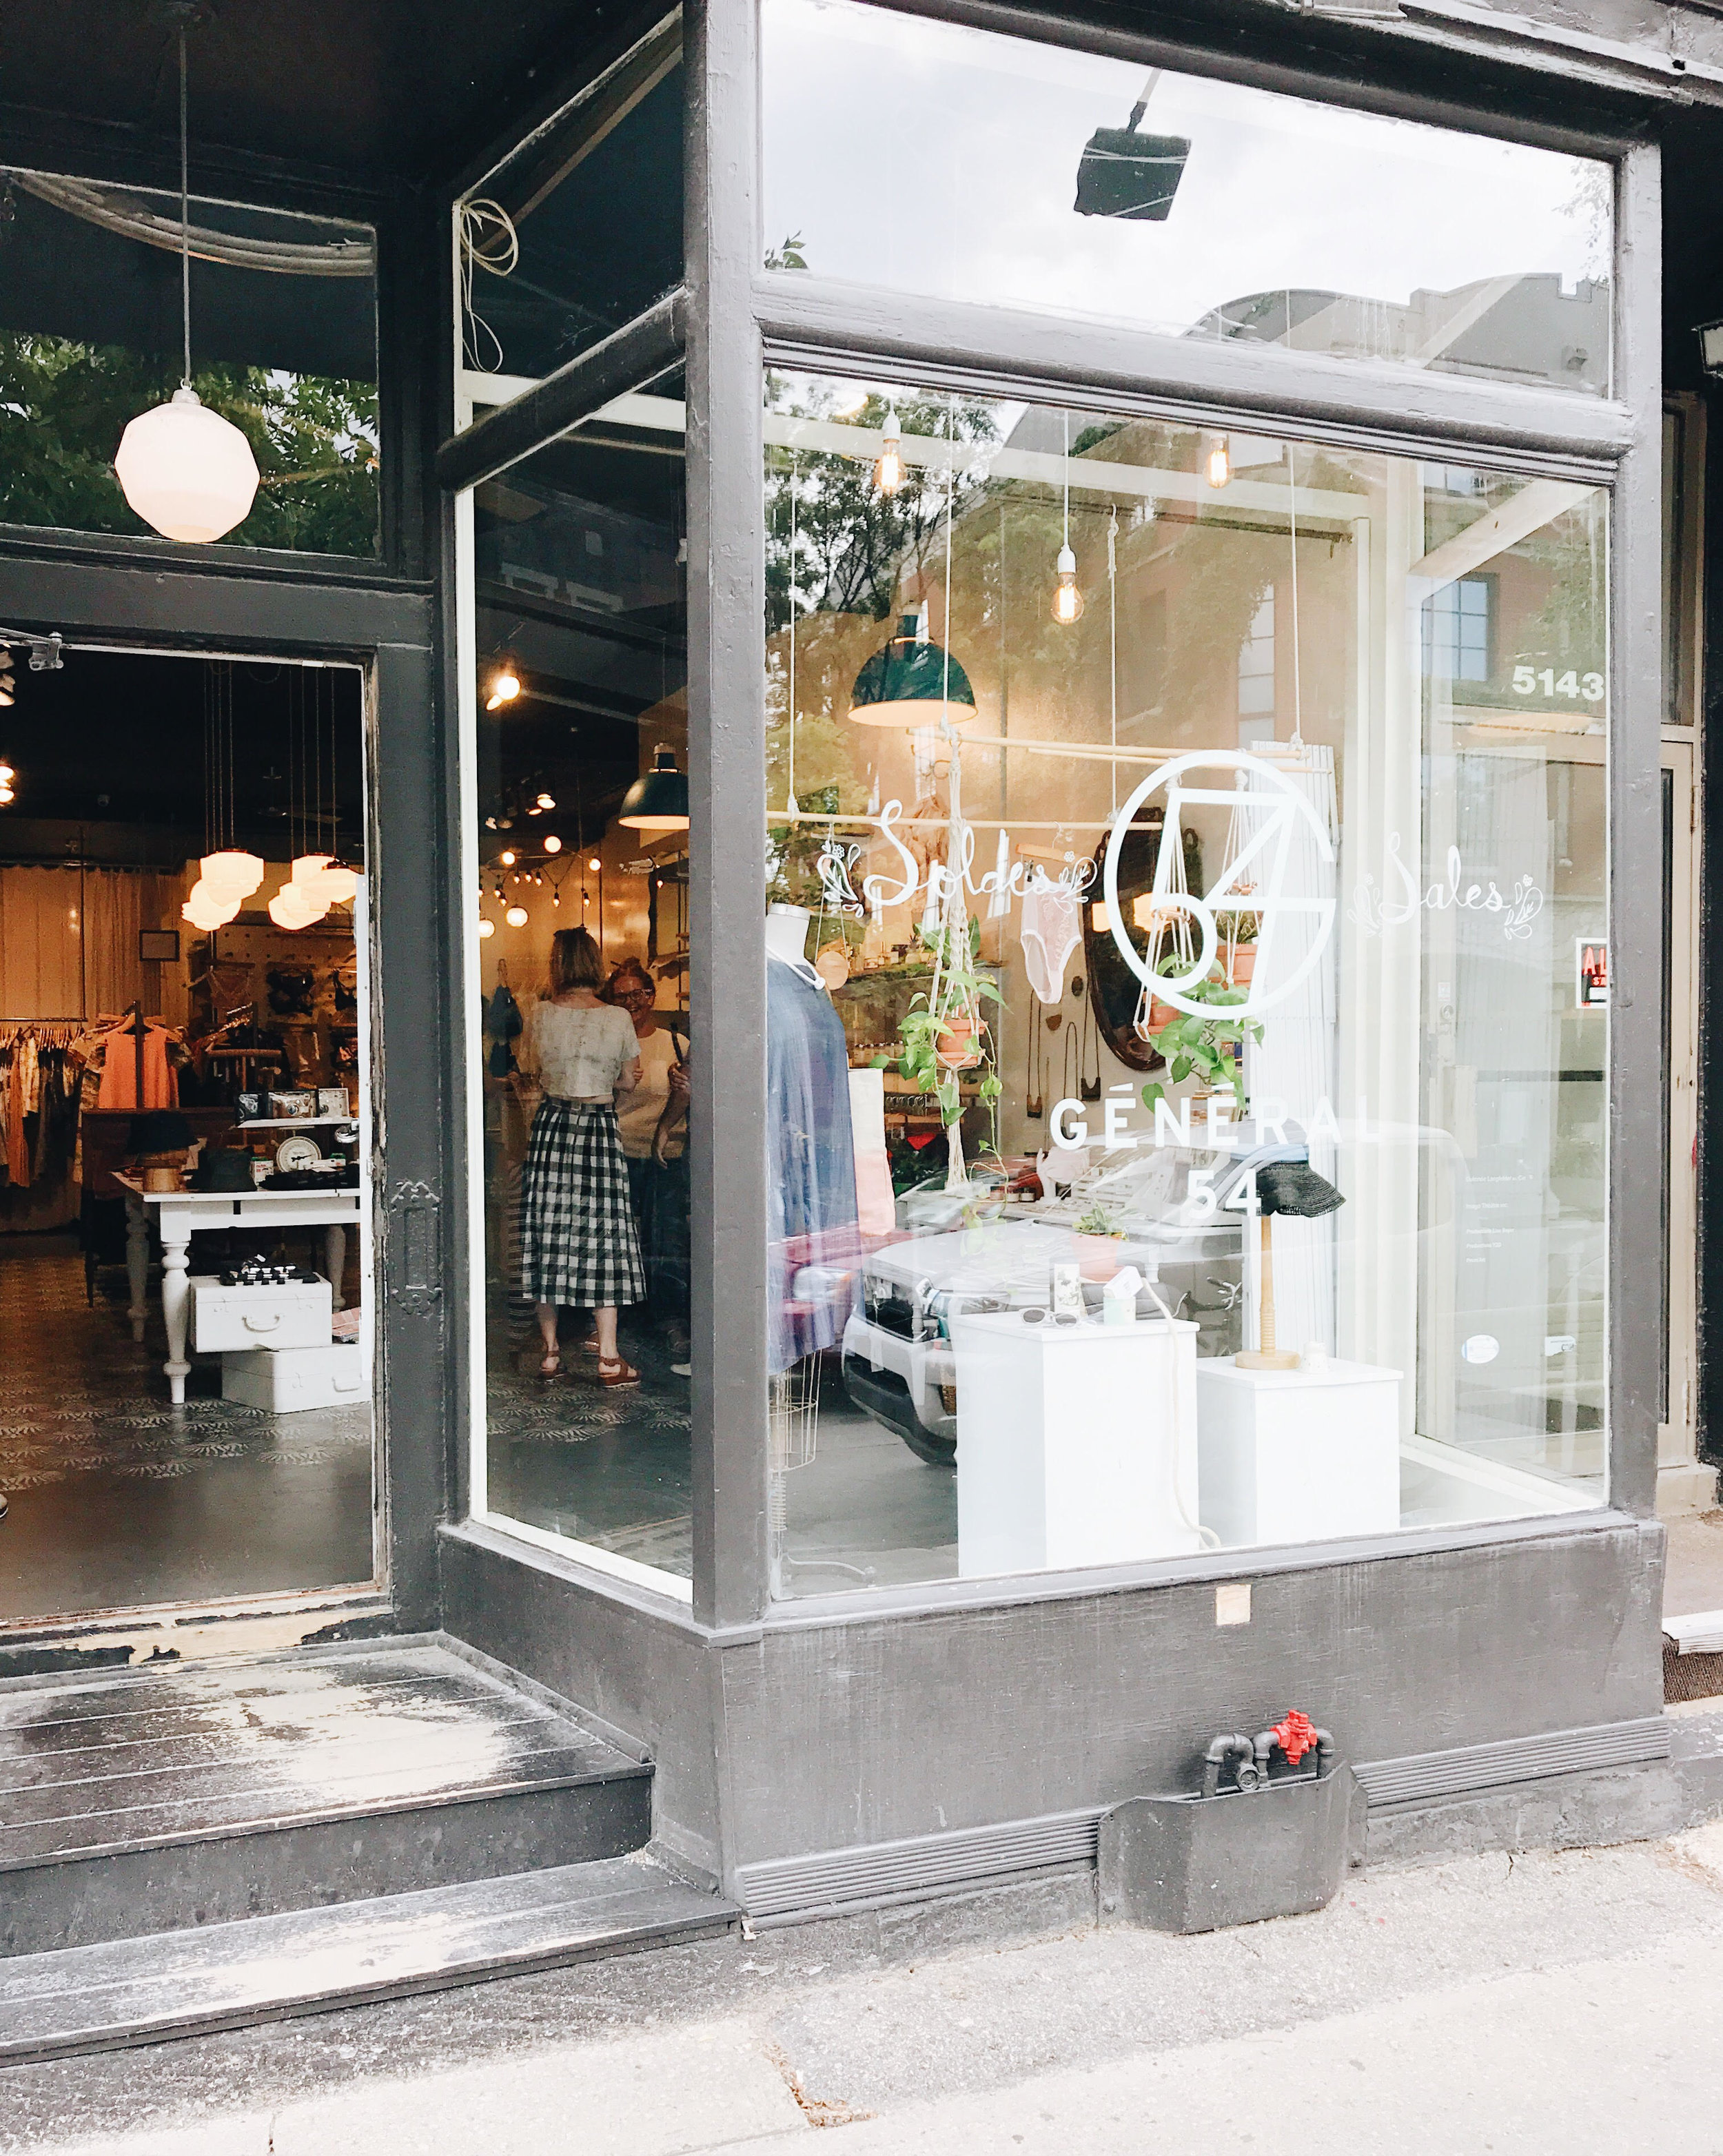 General 54, Nyla Free Designs Travels Montreal, Weekend Guide, Travel Tips, Canada, Calgary Interior Designer